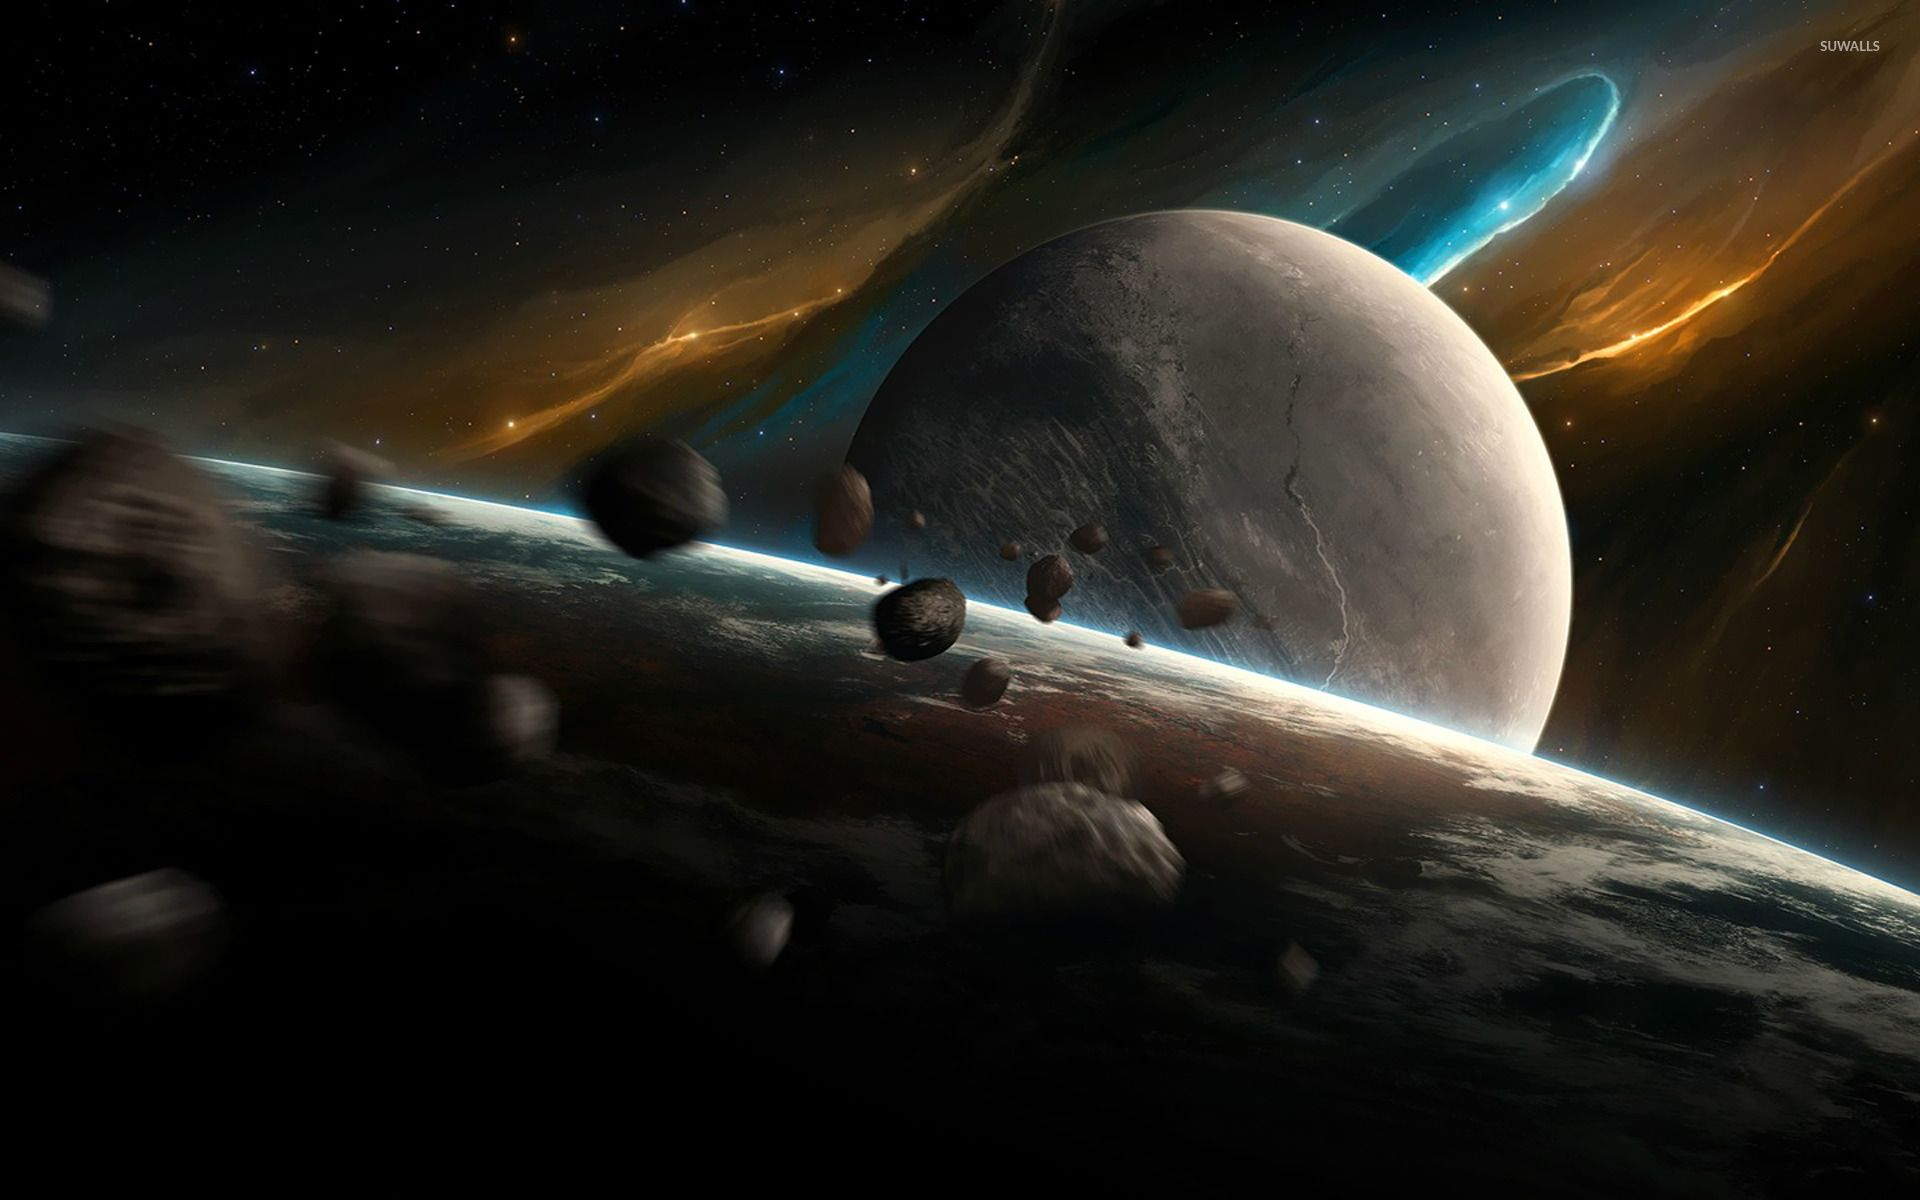 Planets and asteroids [2] wallpapers